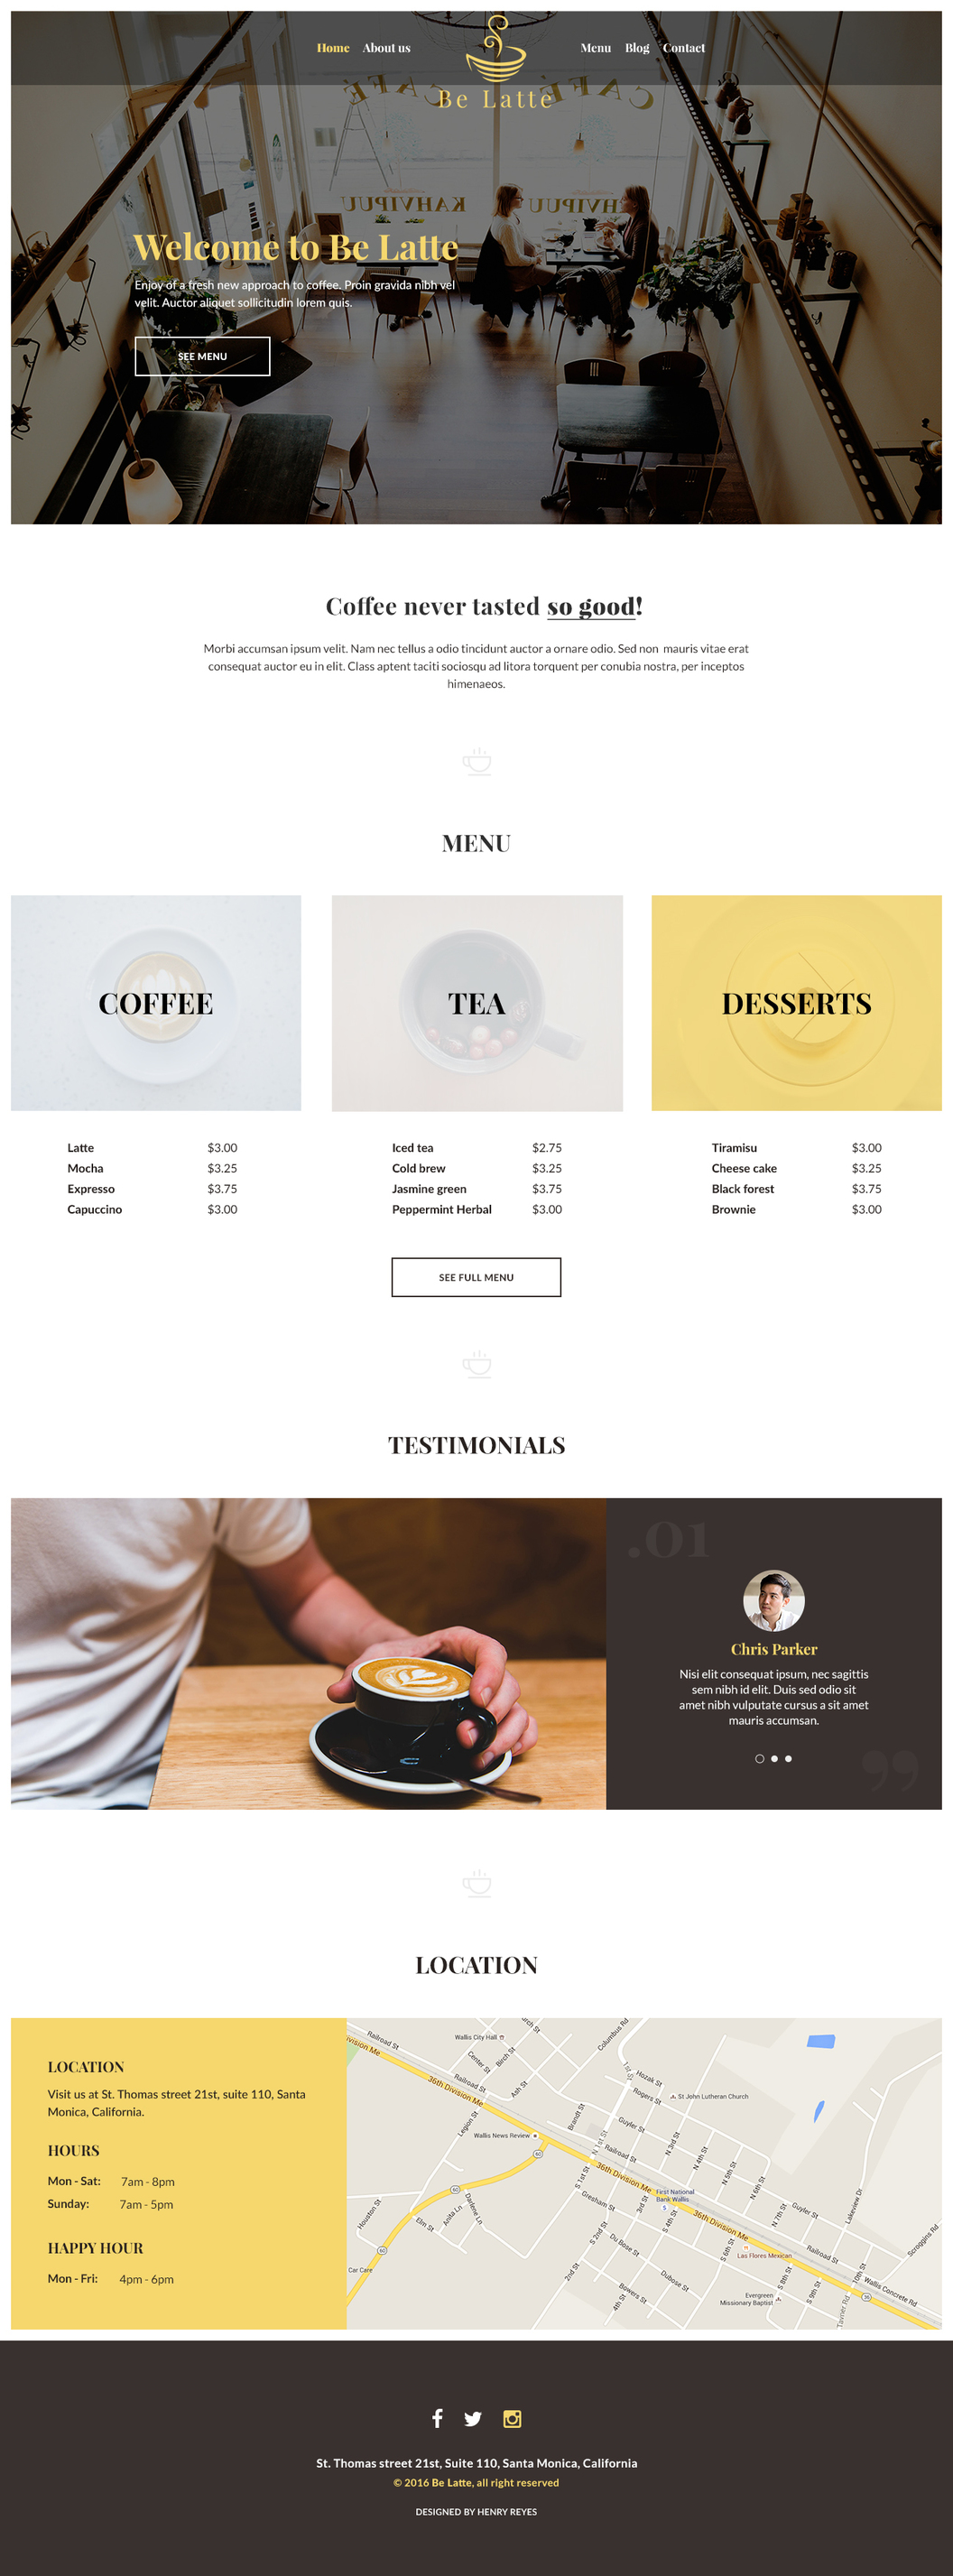 Be Latte - Coffee shop [PSD]